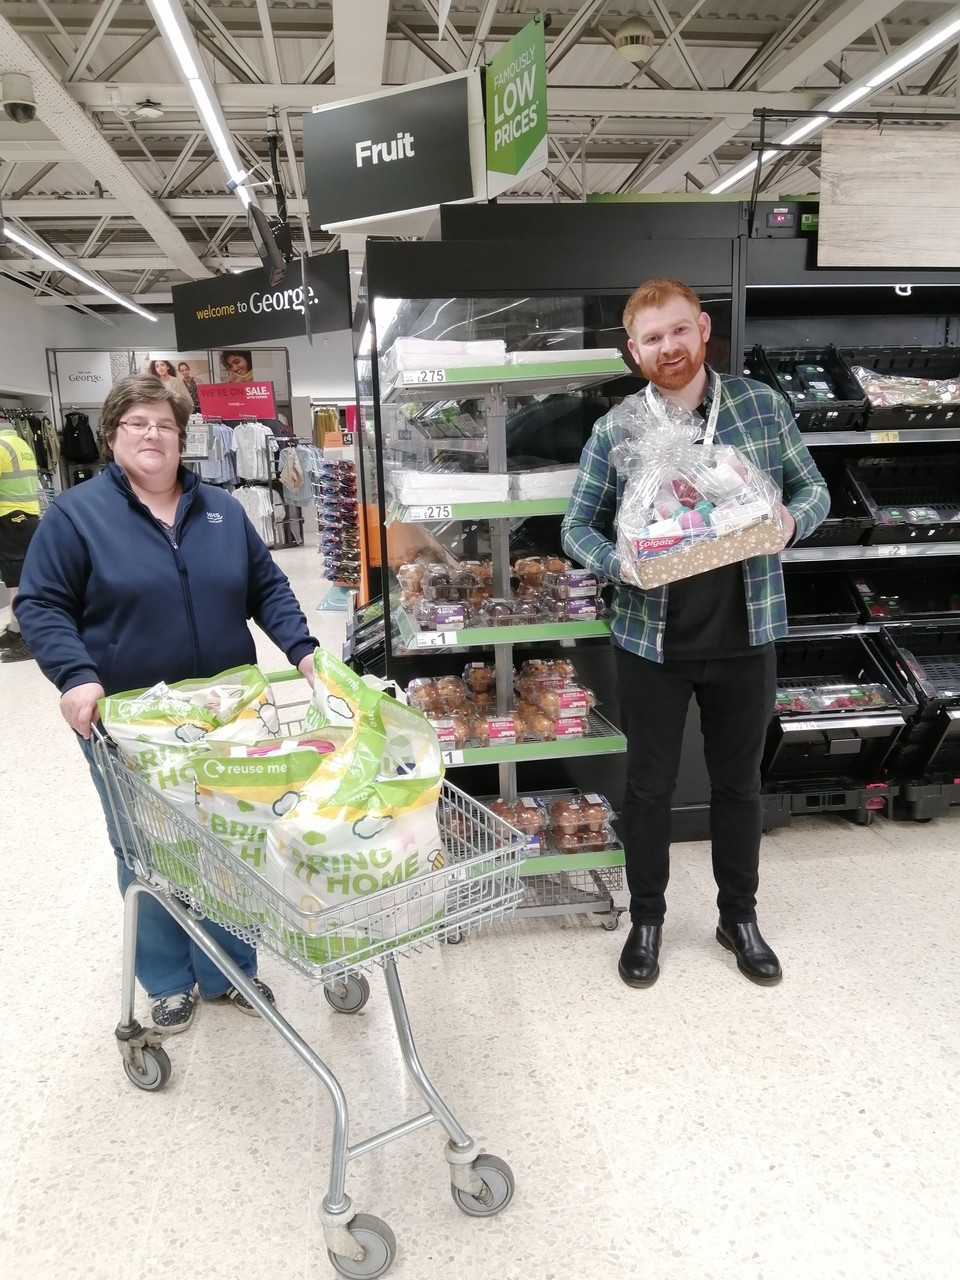 Donations for local hospital | Asda St Leonards